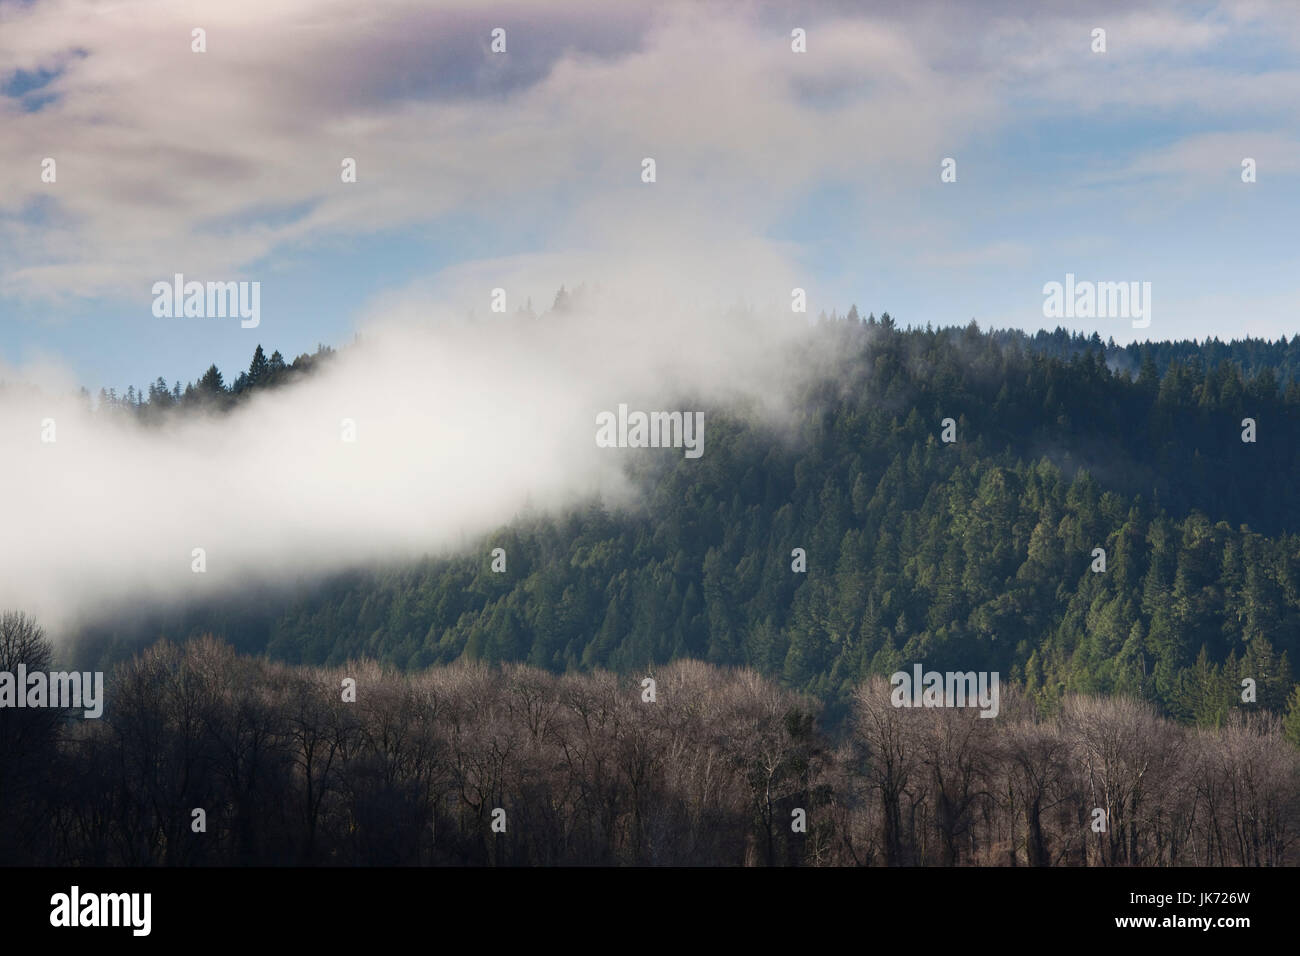 USA, California, Northern California, North Coast, Miranda, morning mist on the Avenue of the Giants, Humbolt Redwoods - Stock Image